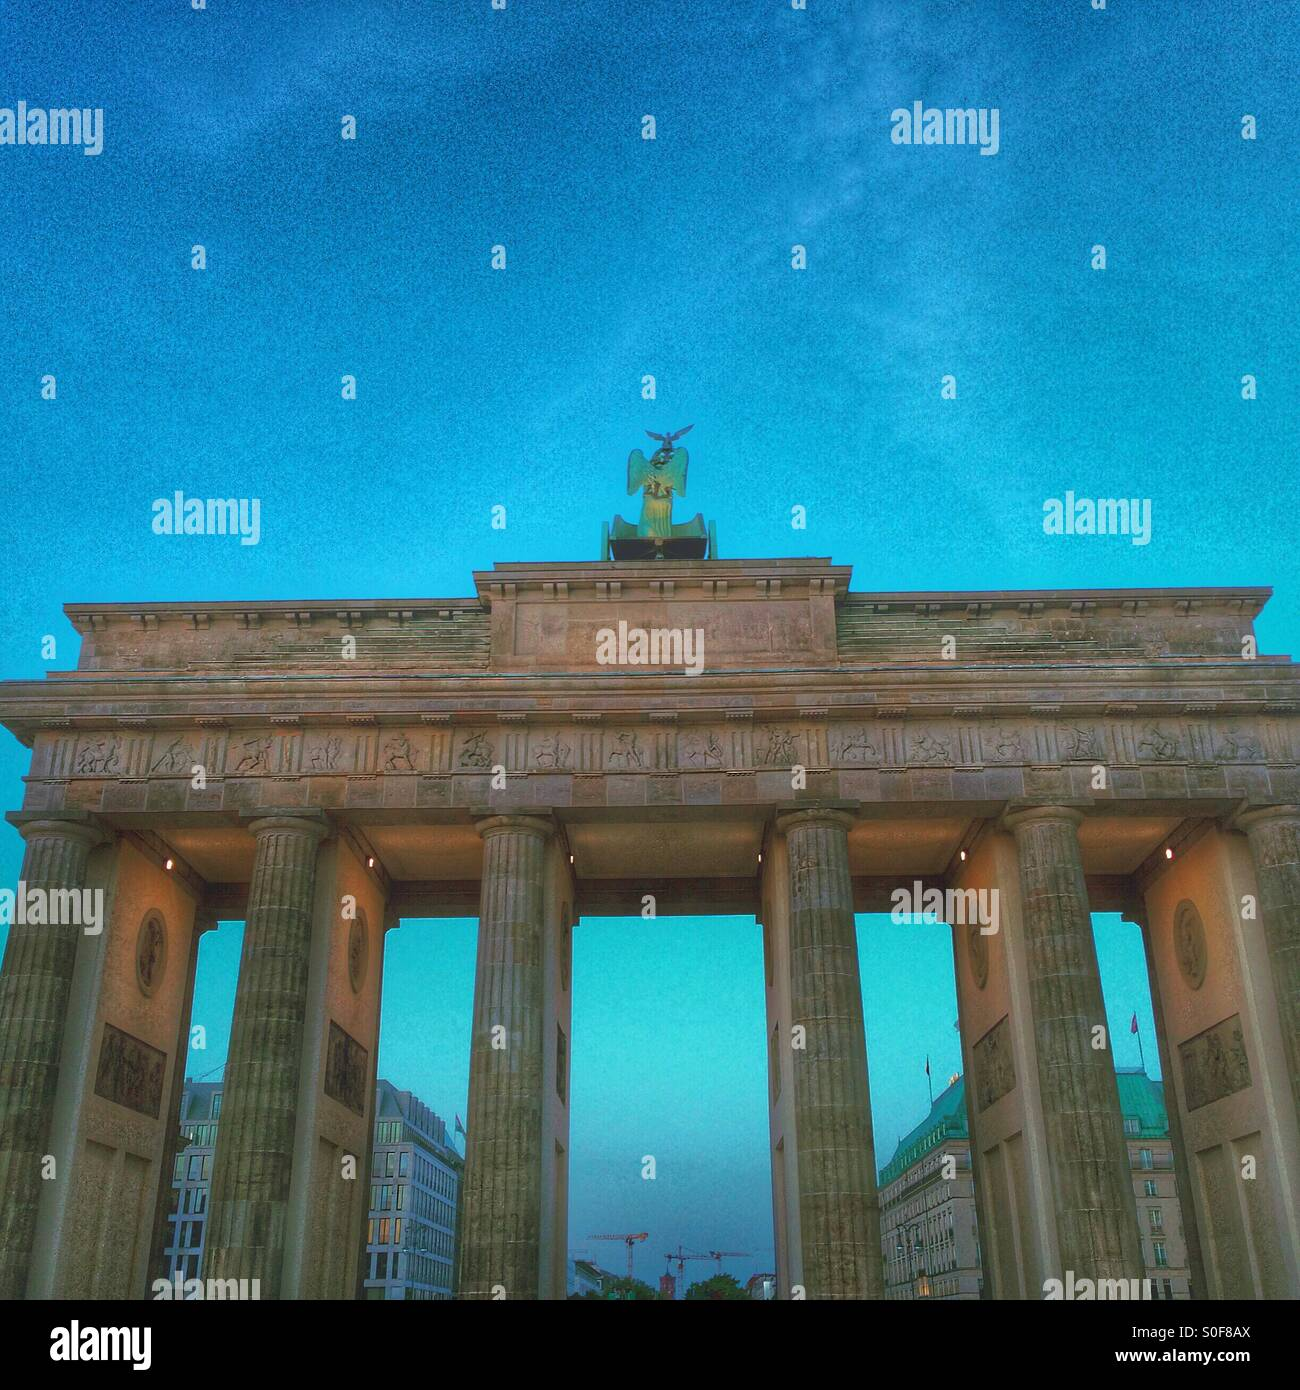 Berlin Brandenburg gate from the West side - Germany - Stock Image